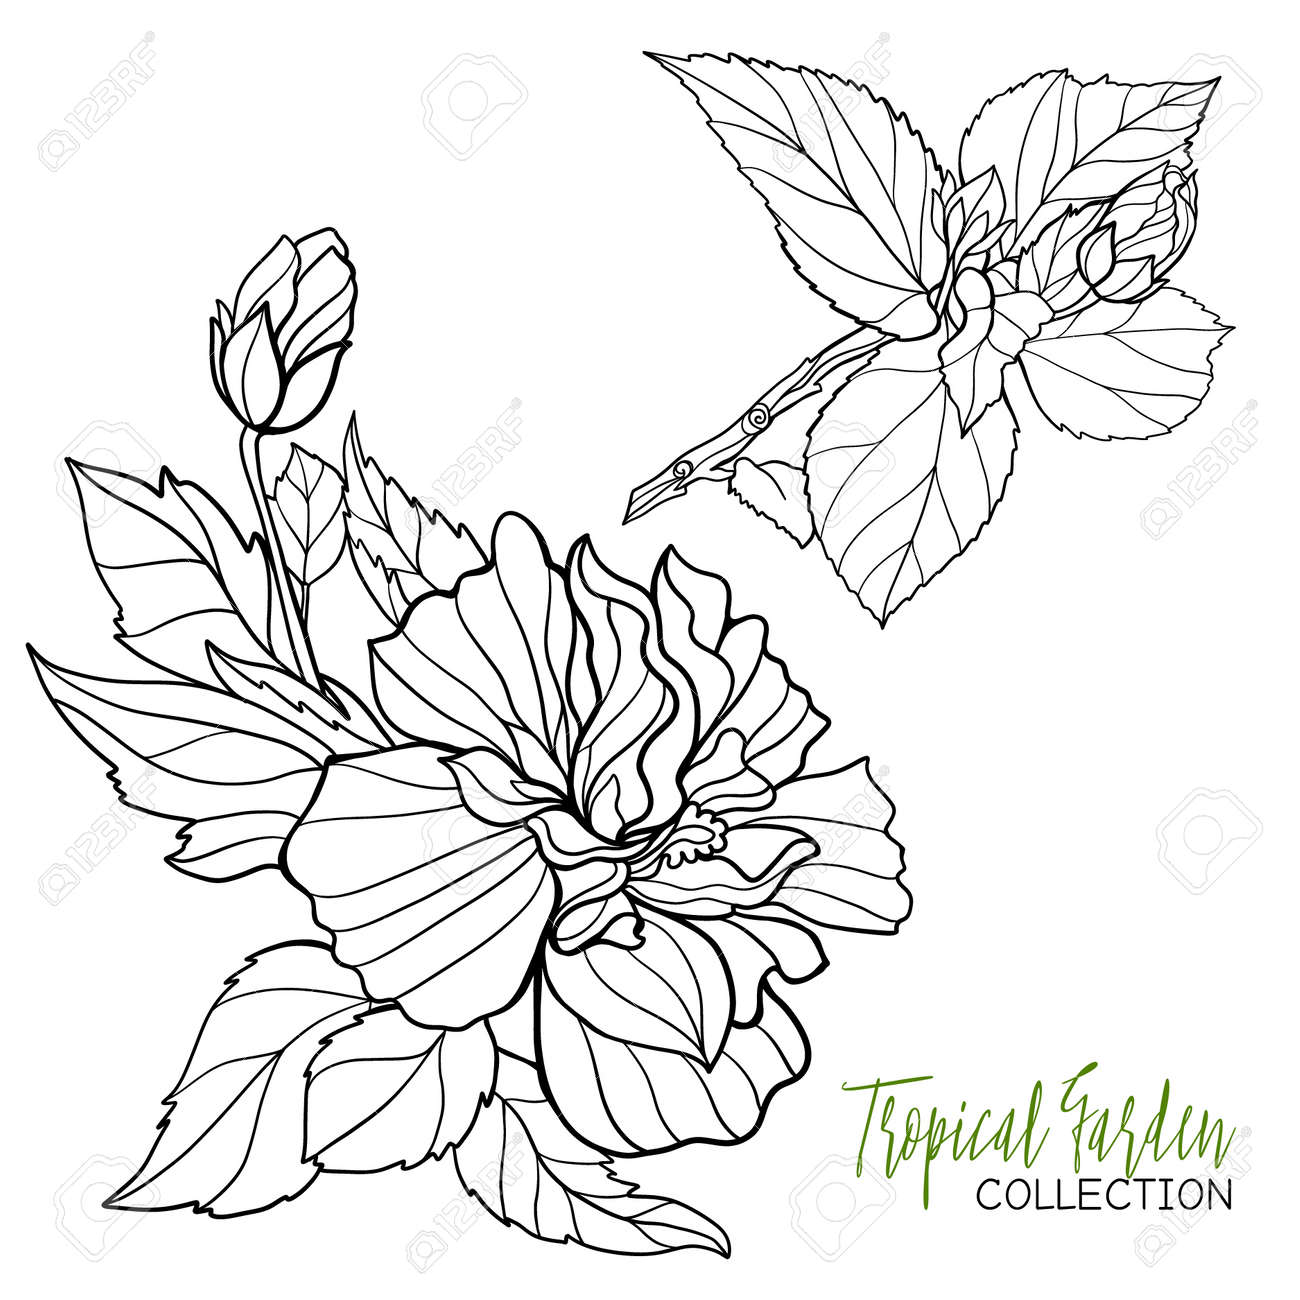 hibiscus tropical plant vector illustration coloring book